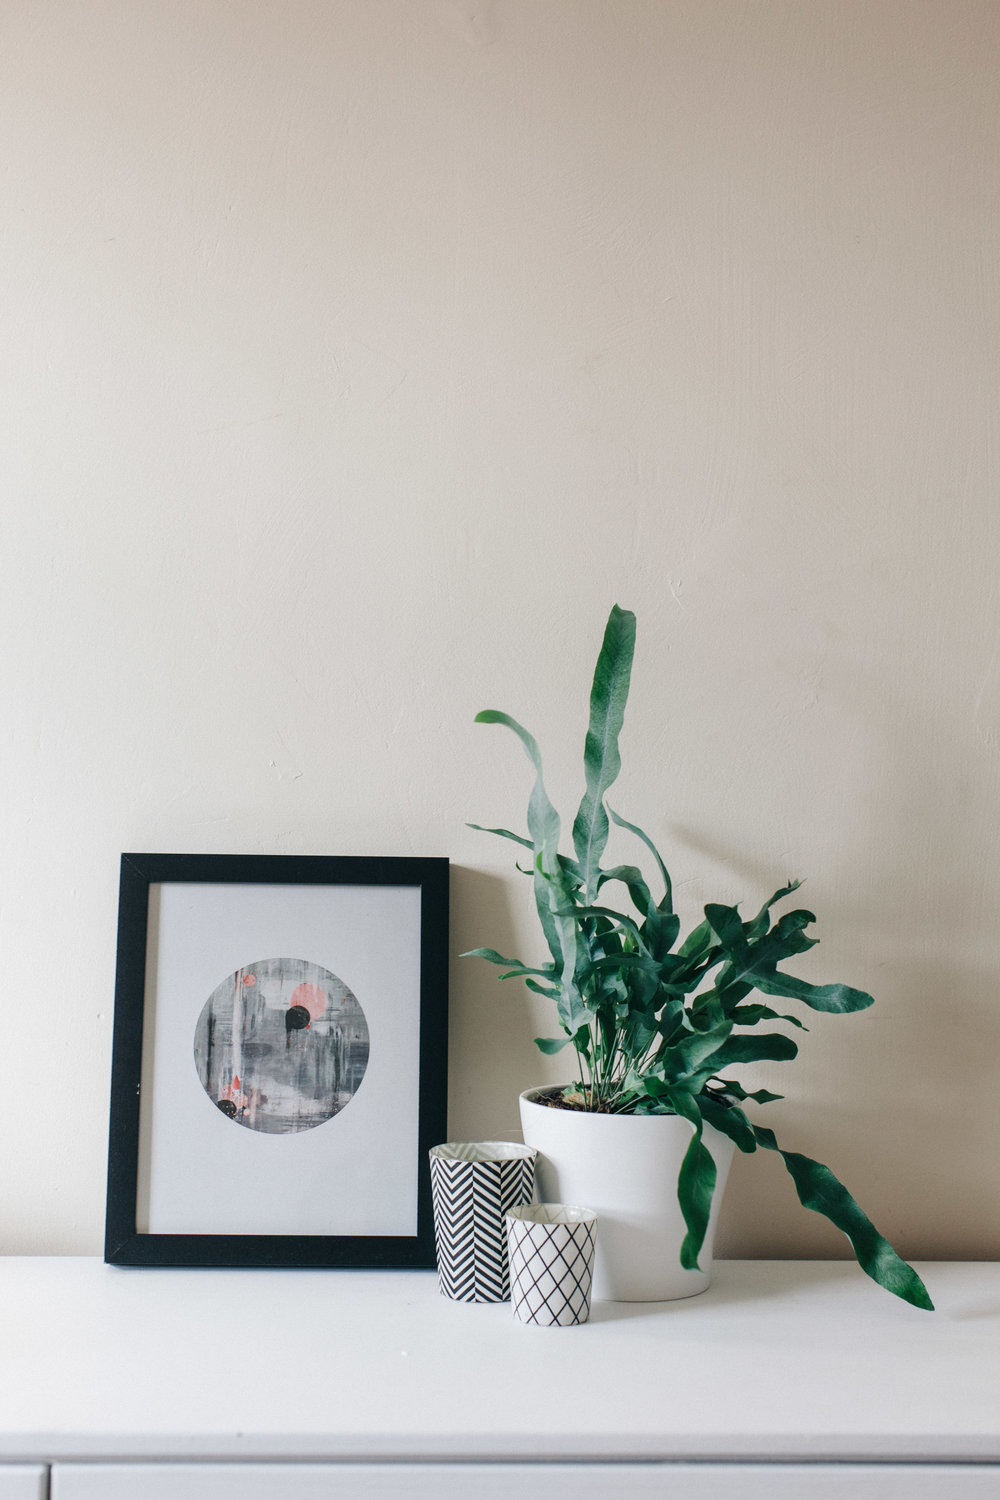 Lynne Rosenvinge Scandinavian wall art. Retreat // Food and lifestyle blog based in Sussex. Photography by Emma Gutteridge.